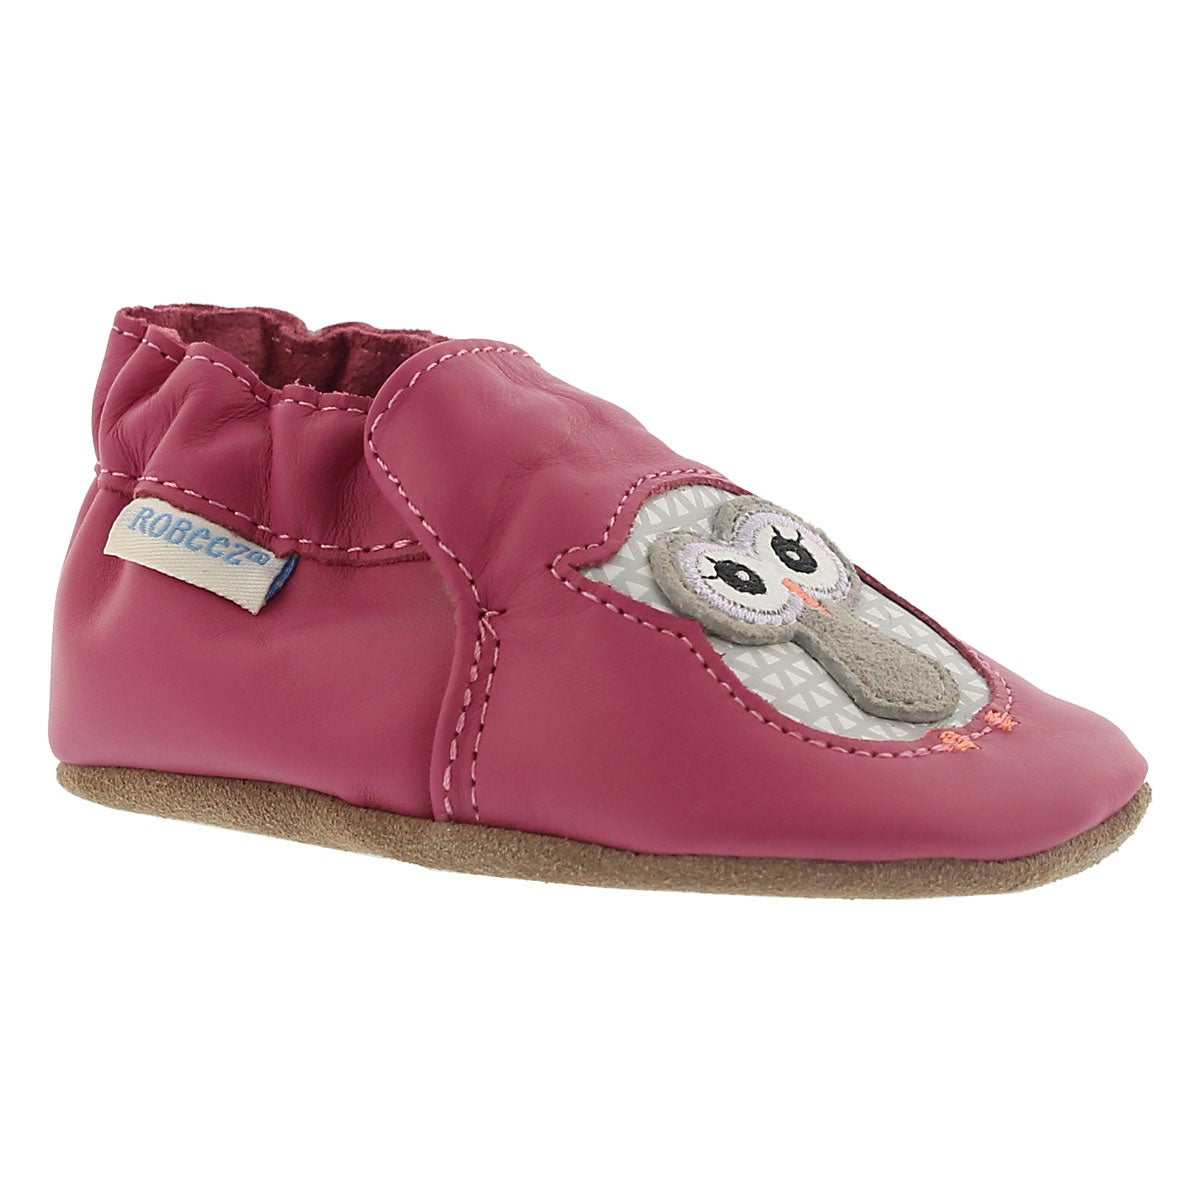 Infants' OWL PLAYMATES pink slippers